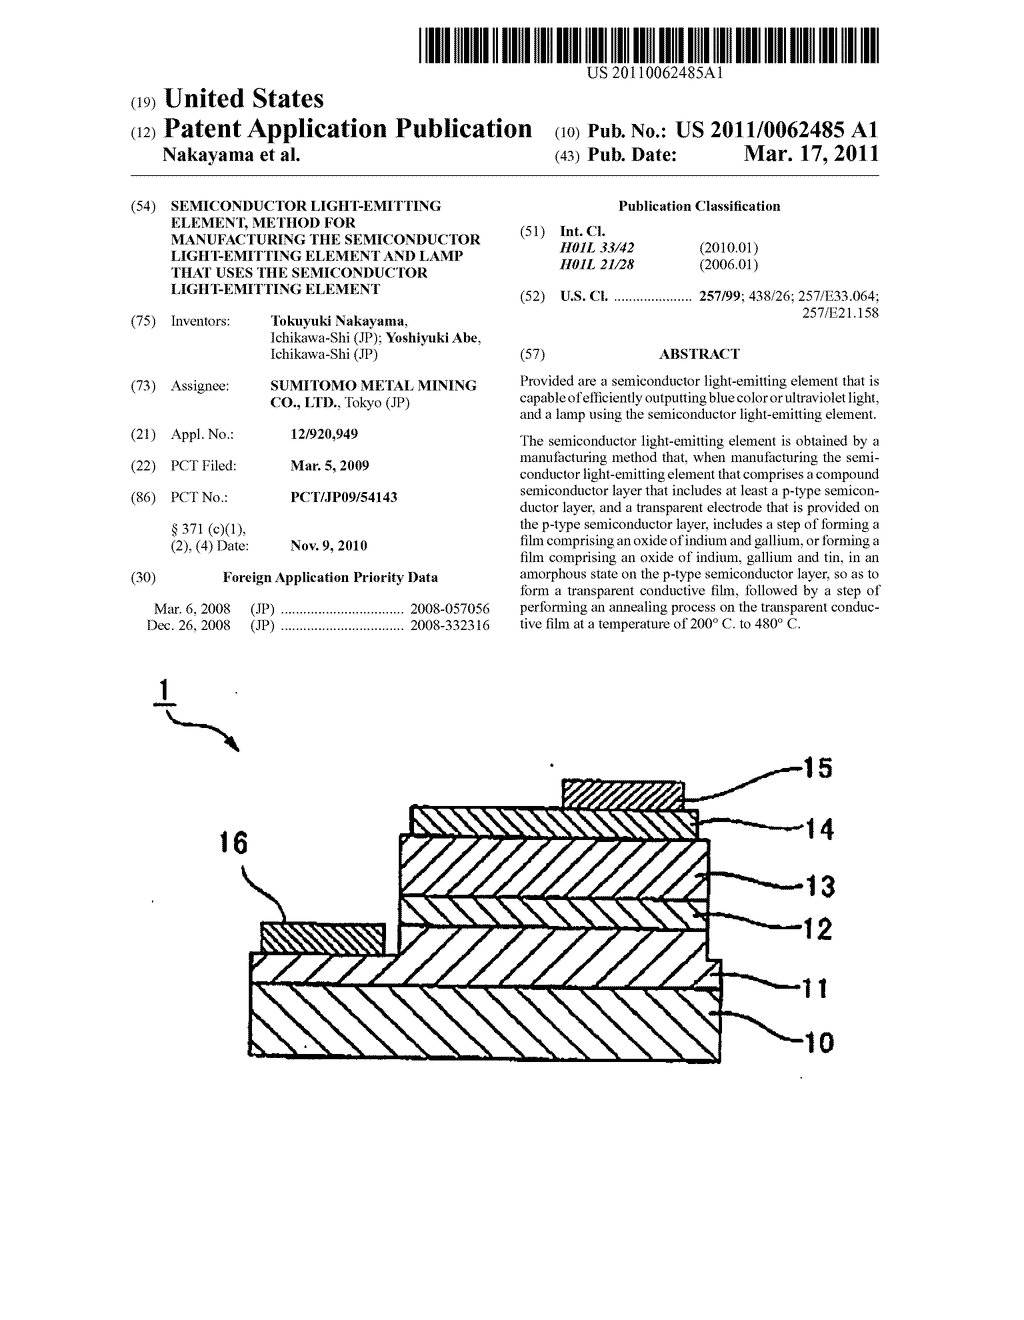 SEMICONDUCTOR LIGHT-EMITTING ELEMENT, METHOD FOR MANUFACTURING THE SEMICONDUCTOR LIGHT-EMITTING ELEMENT AND LAMP THAT USES THE SEMICONDUCTOR LIGHT-EMITTING ELEMENT - diagram, schematic, and image 01